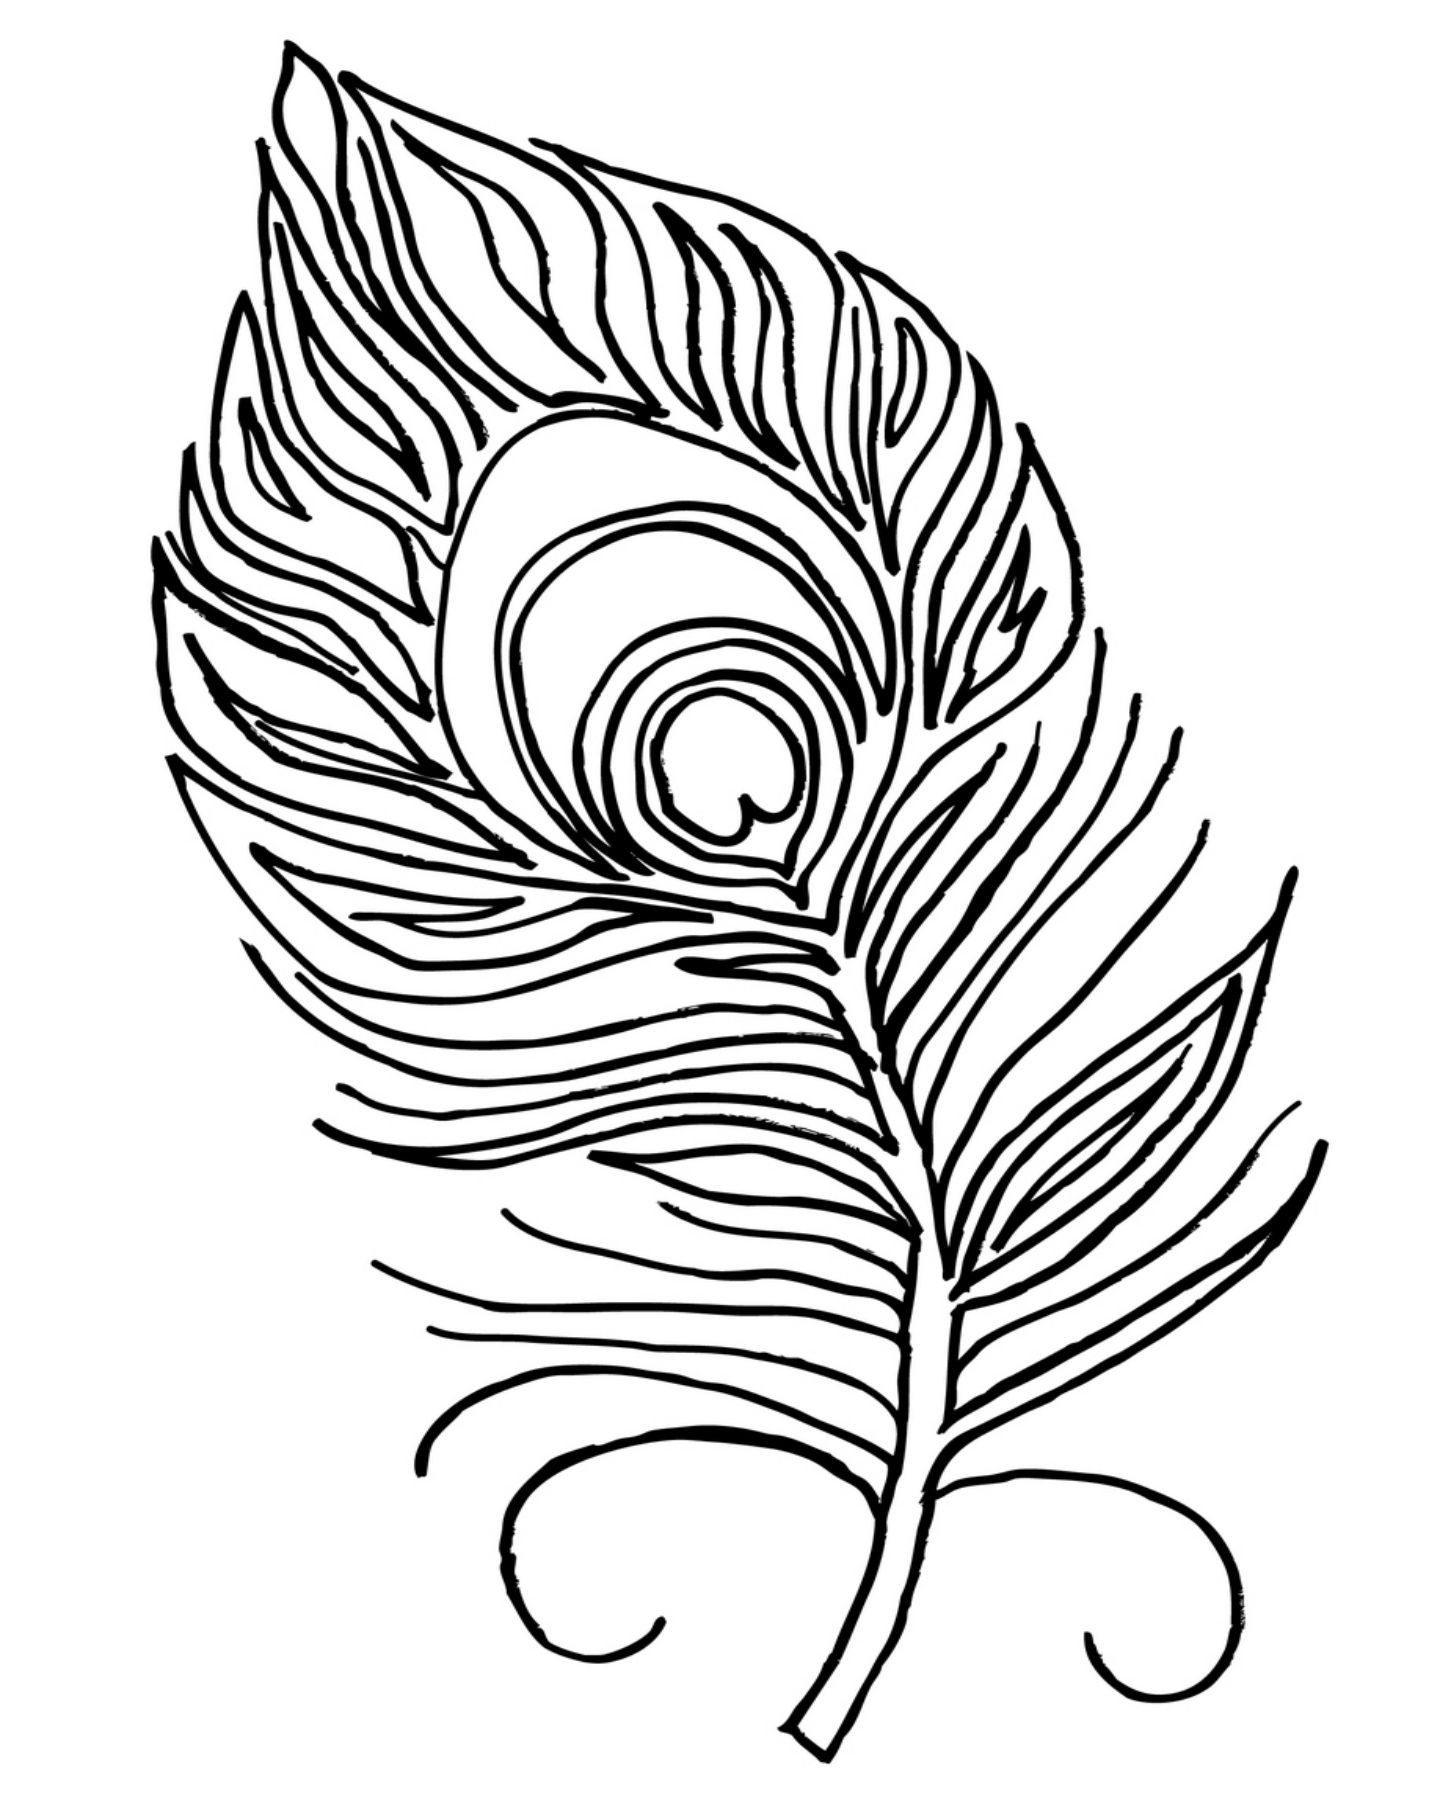 easy cute peacock coloring pages printable peacock coloring pages peacock coloring pages cute peacock easy coloring pages